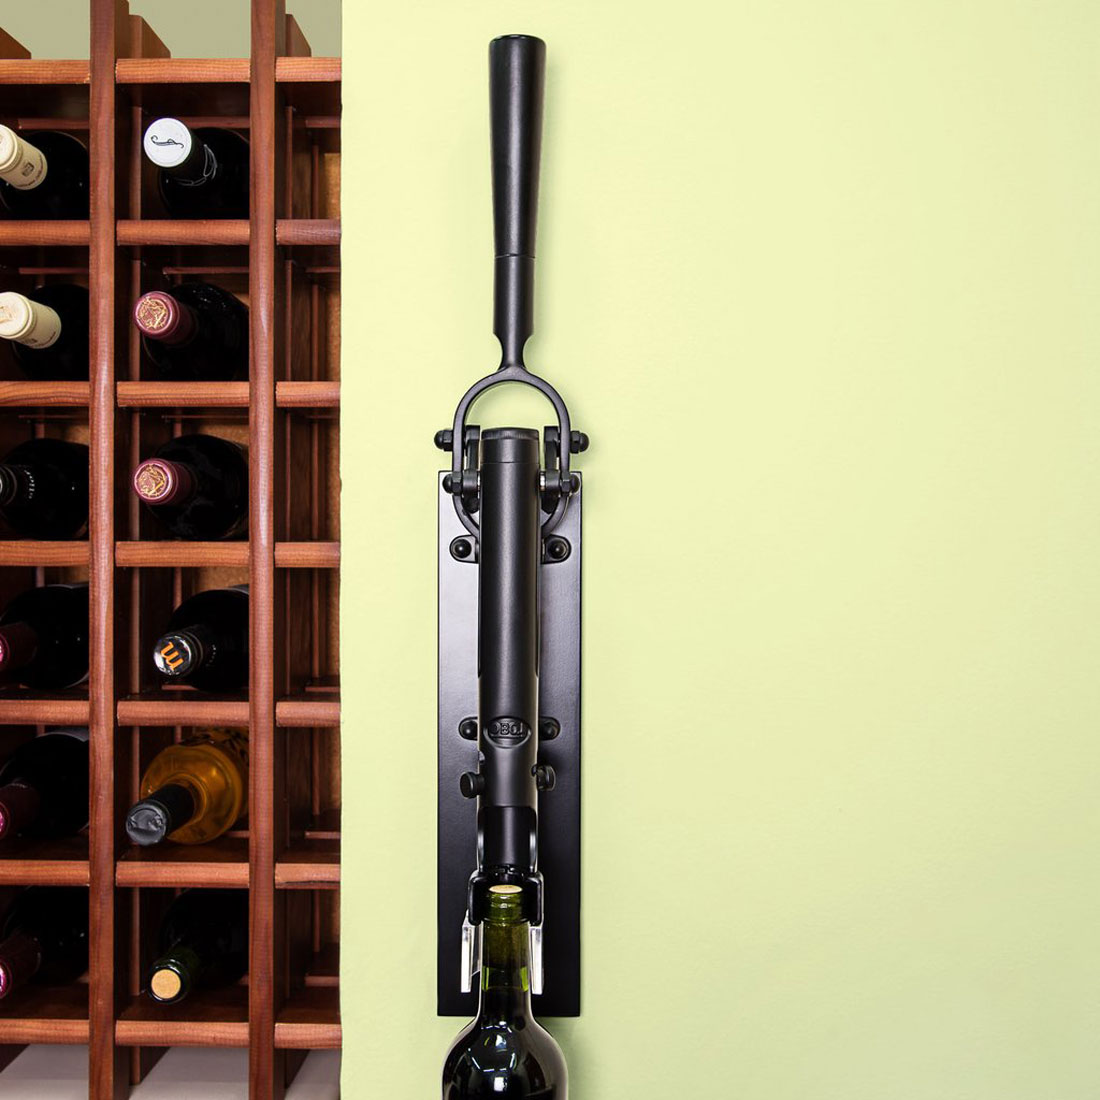 Wall Mounted Wine Openers Boj Professional Wall Mounted Corkscrew Wine Bottle Opener